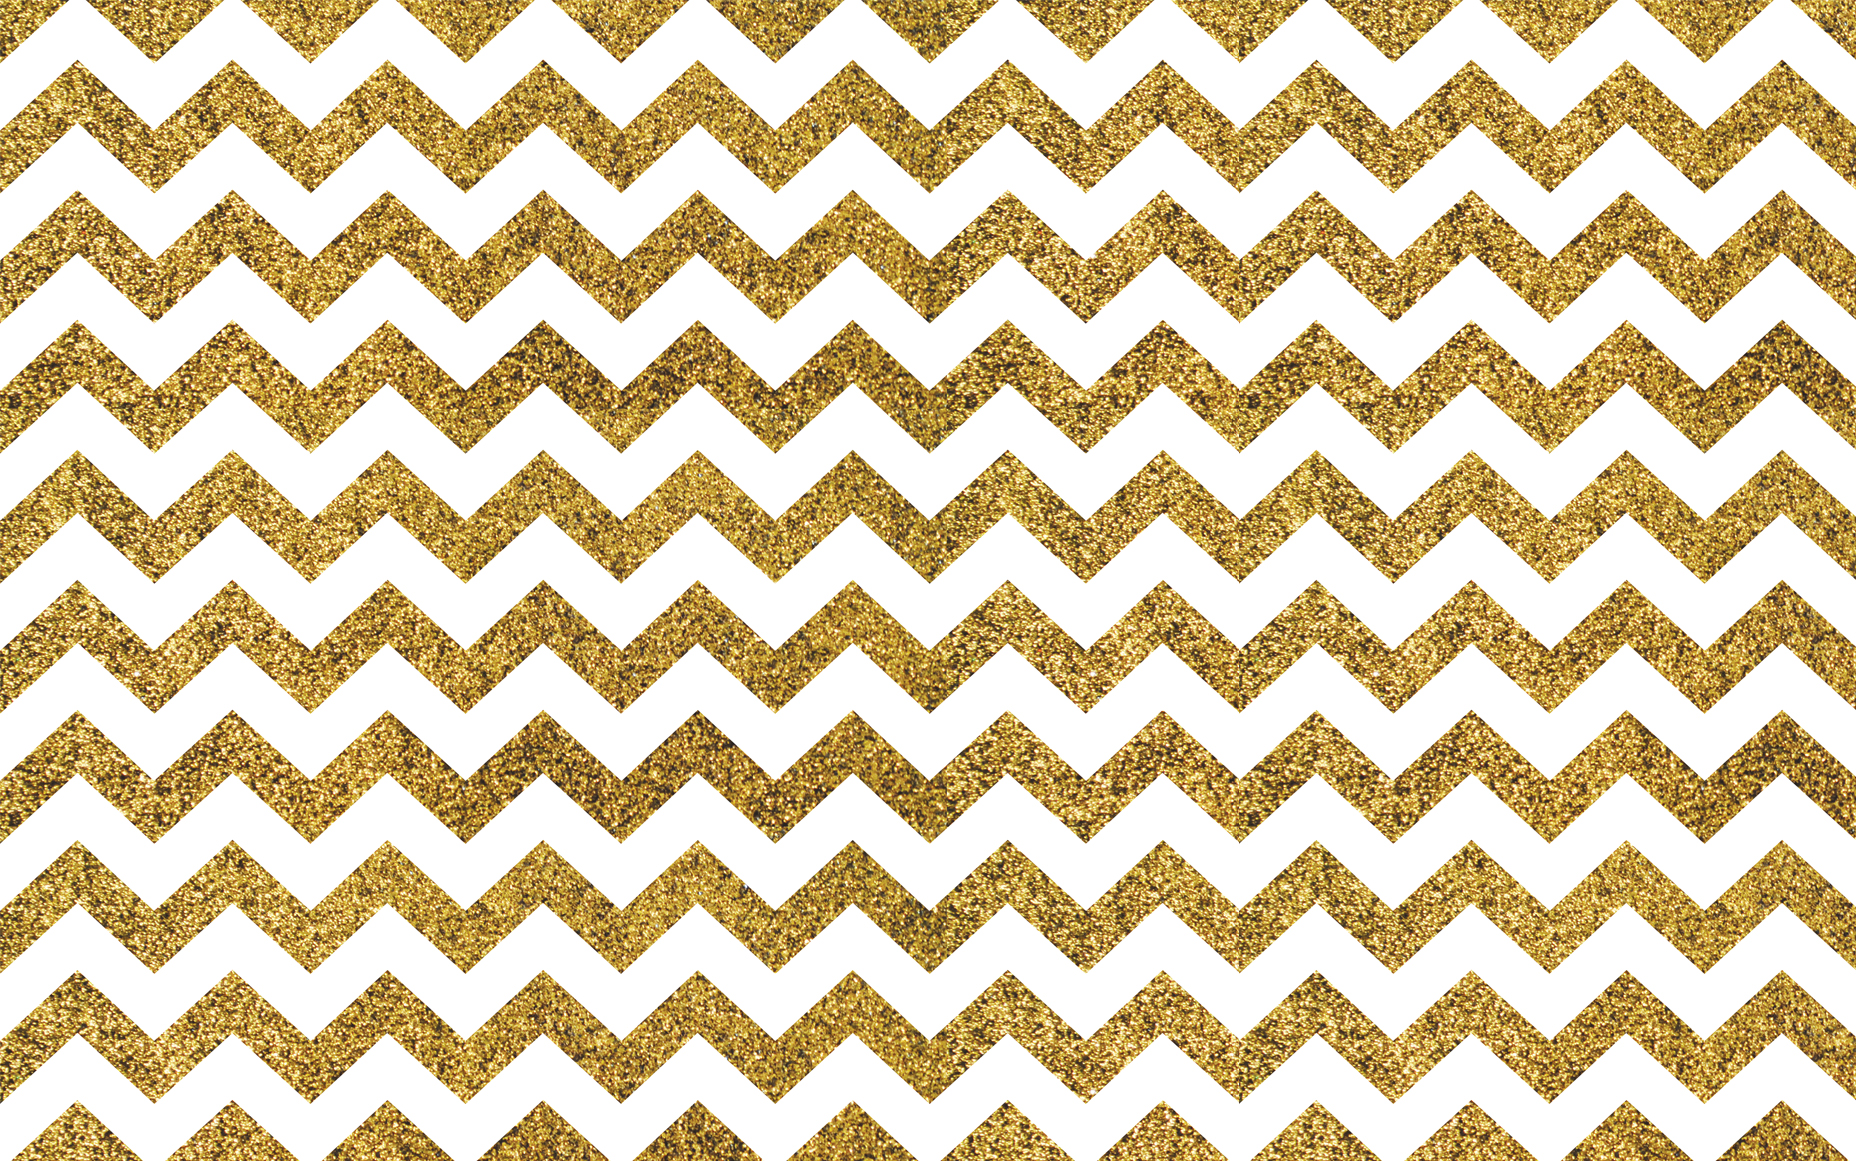 sparkly gold wallpaper #21